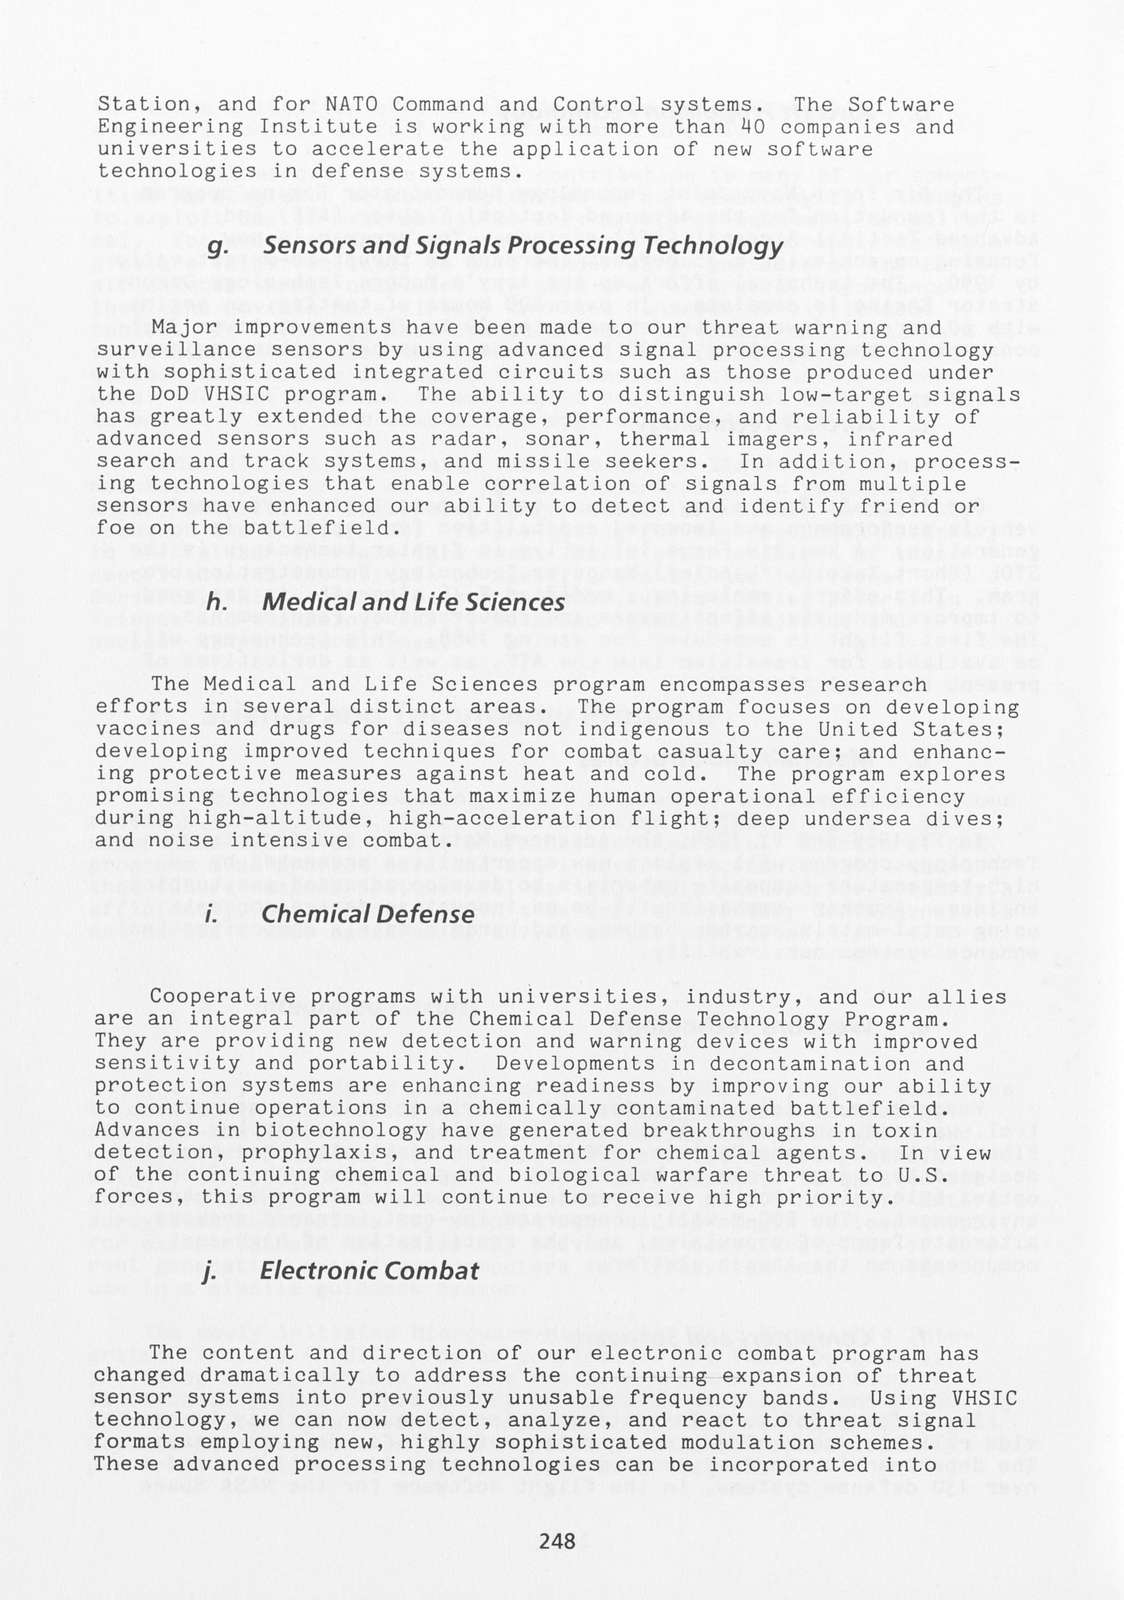 Report of Secretary of Defense ... to the Congress on the FY ... budget, FY ... authorization request, and FY ... defense programs